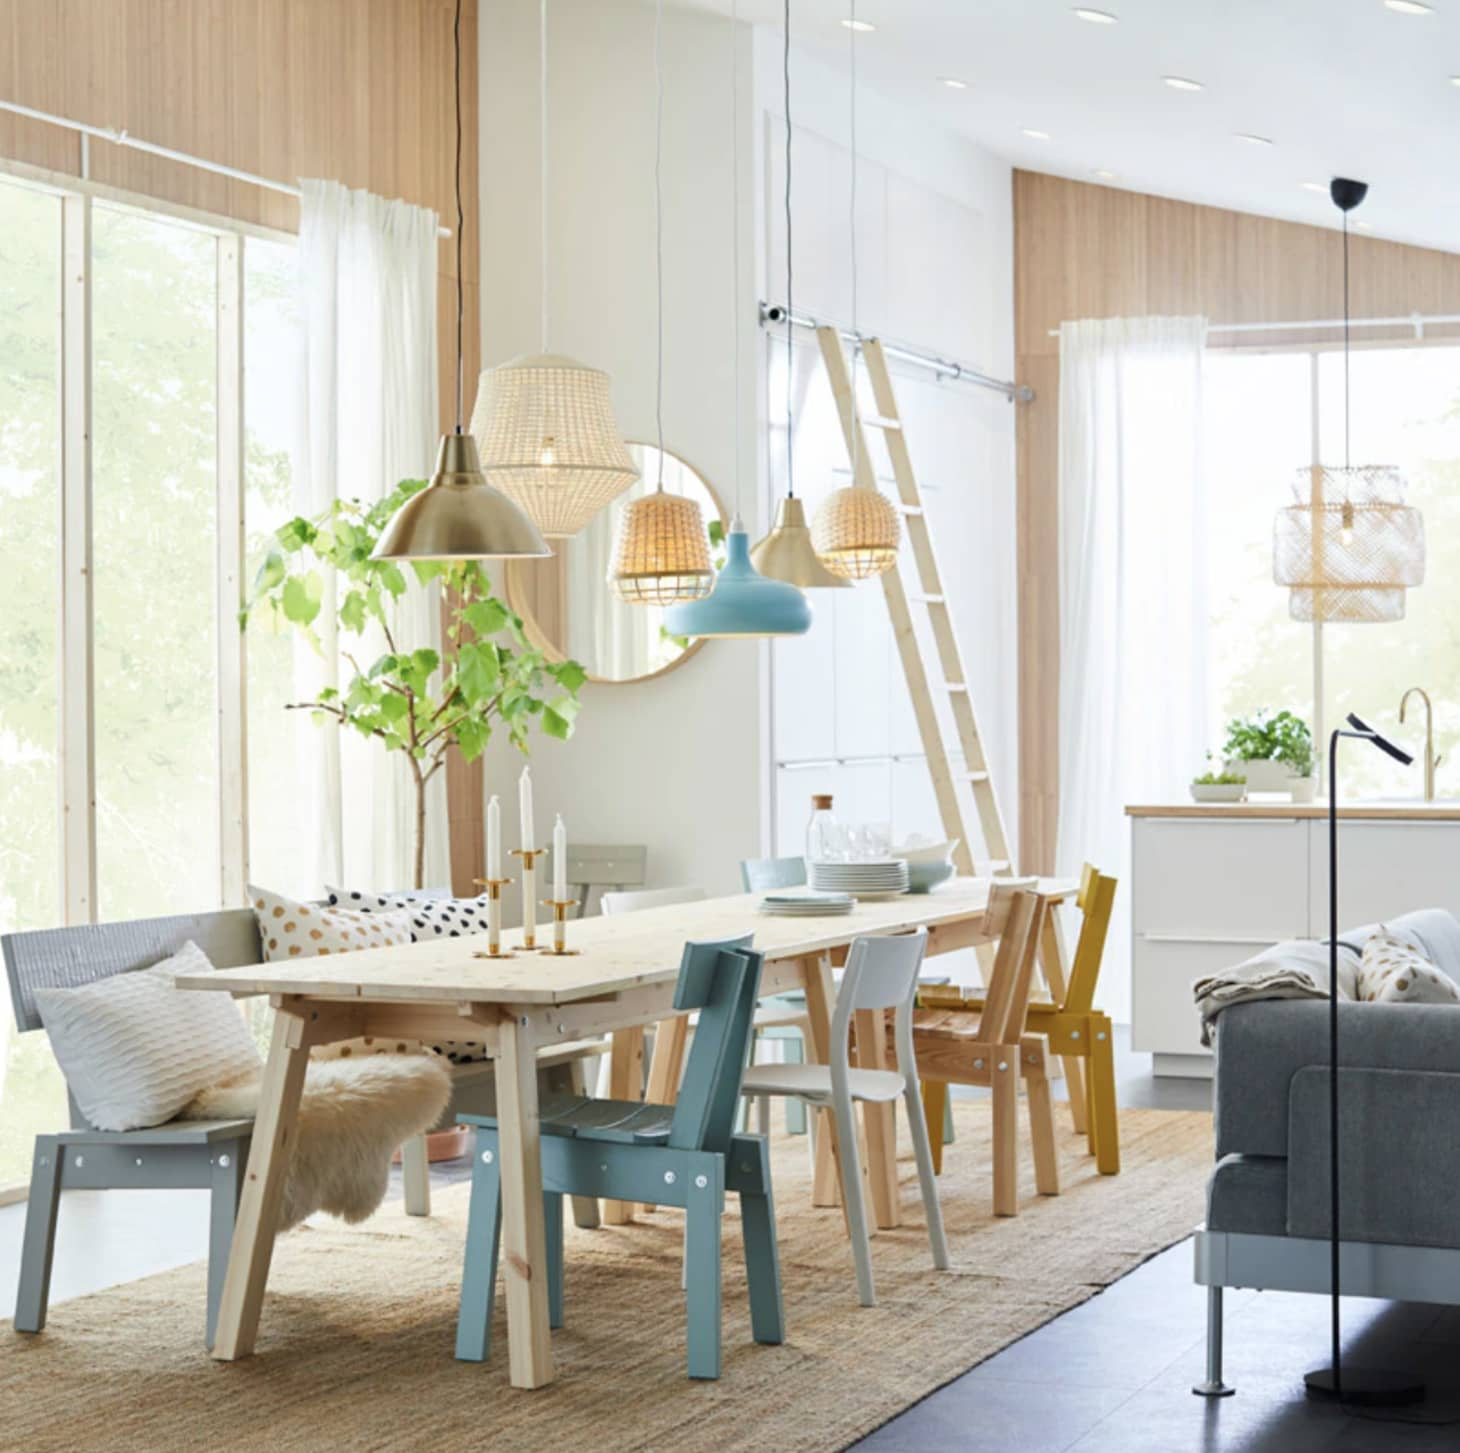 Pleasing Clever Dining Room Design Ideas To Steal From Ikea Beutiful Home Inspiration Truamahrainfo